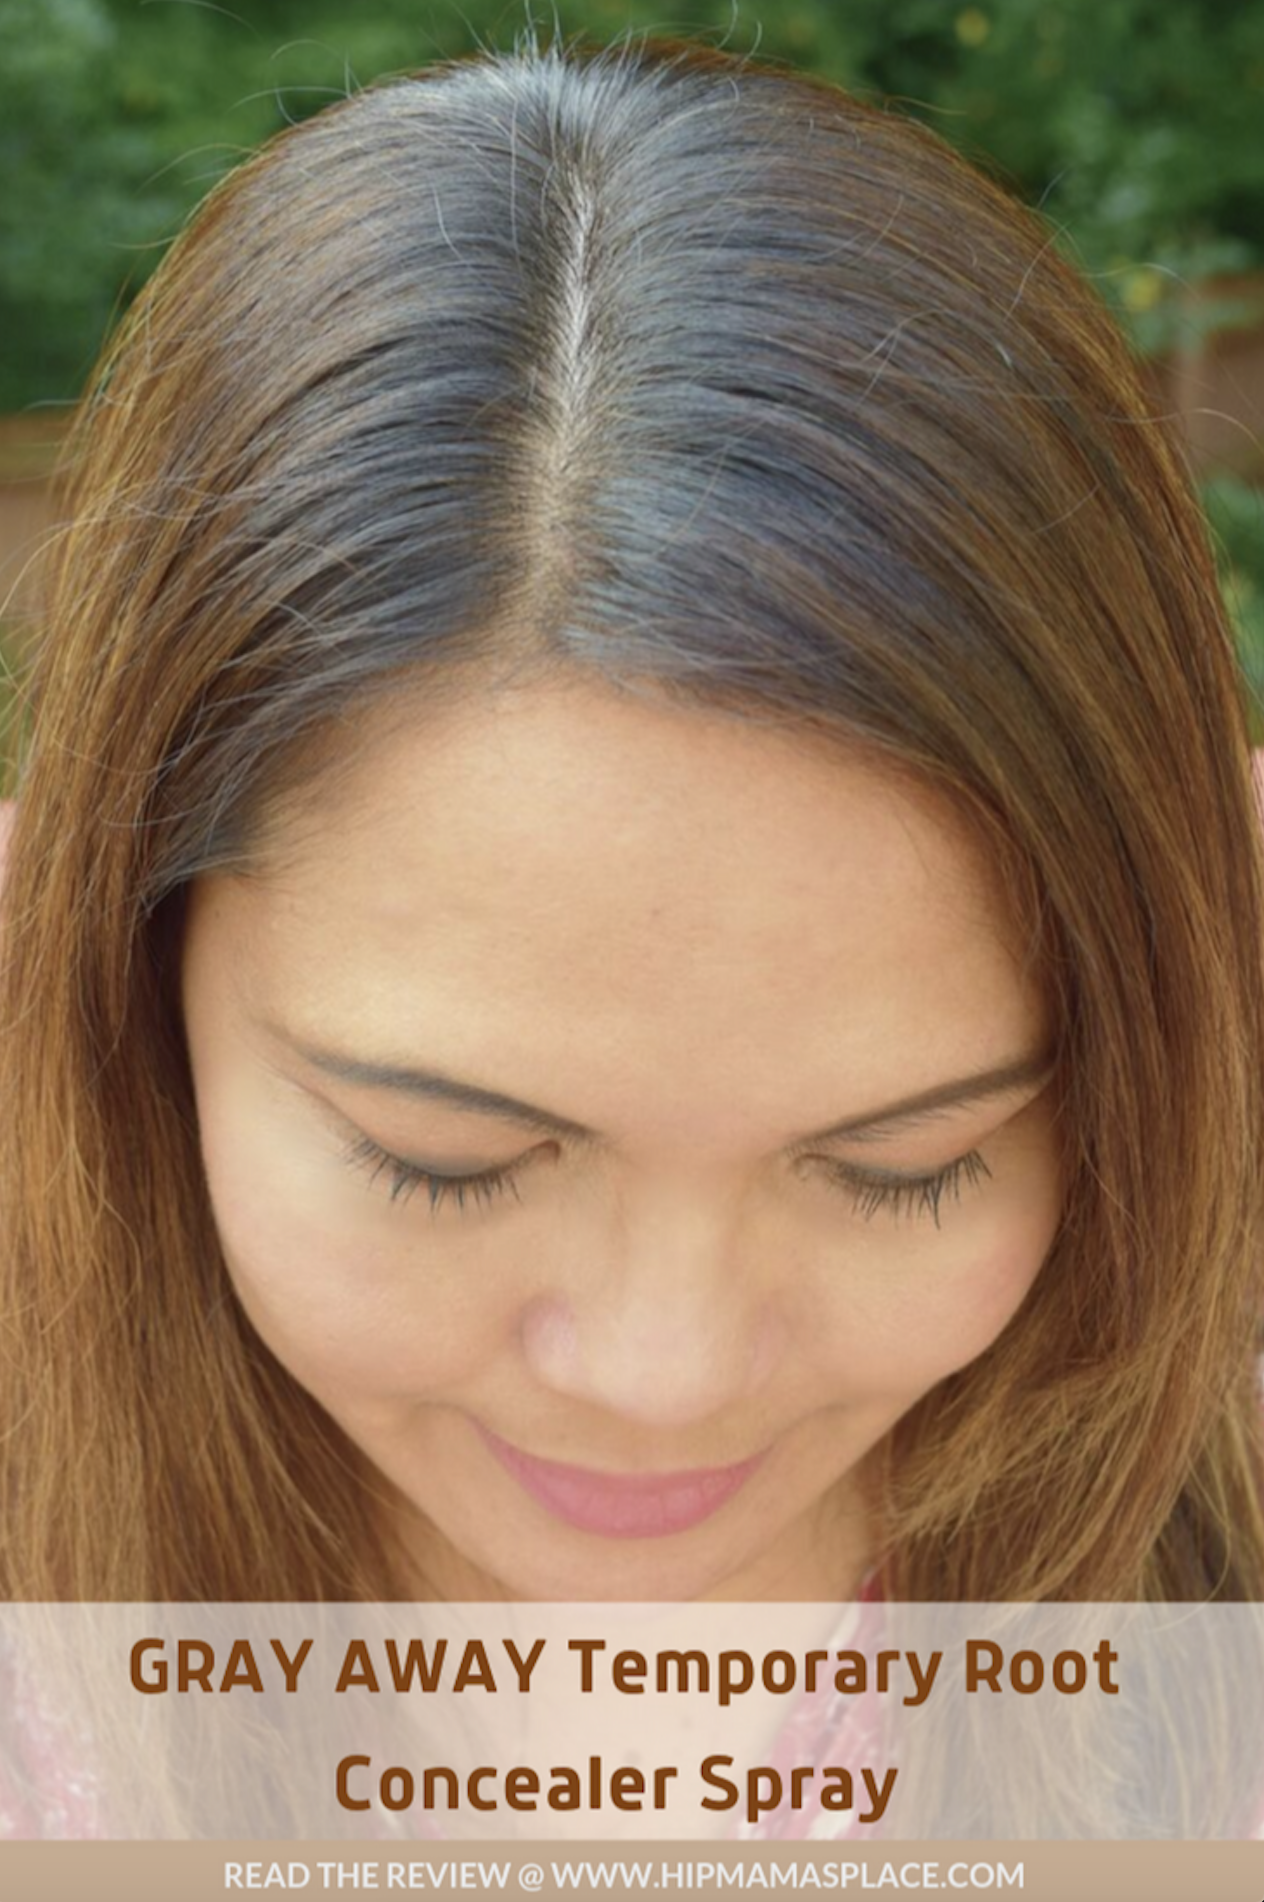 Thanks to Gray Away Temporary Root Concealer Spray, I can easily and affordably touch up my gray hairs without spending a fortune at the salon every time! #ad #GrayAwayPartner #rootconcealer #beforeandafter #hairstyle #haircolor